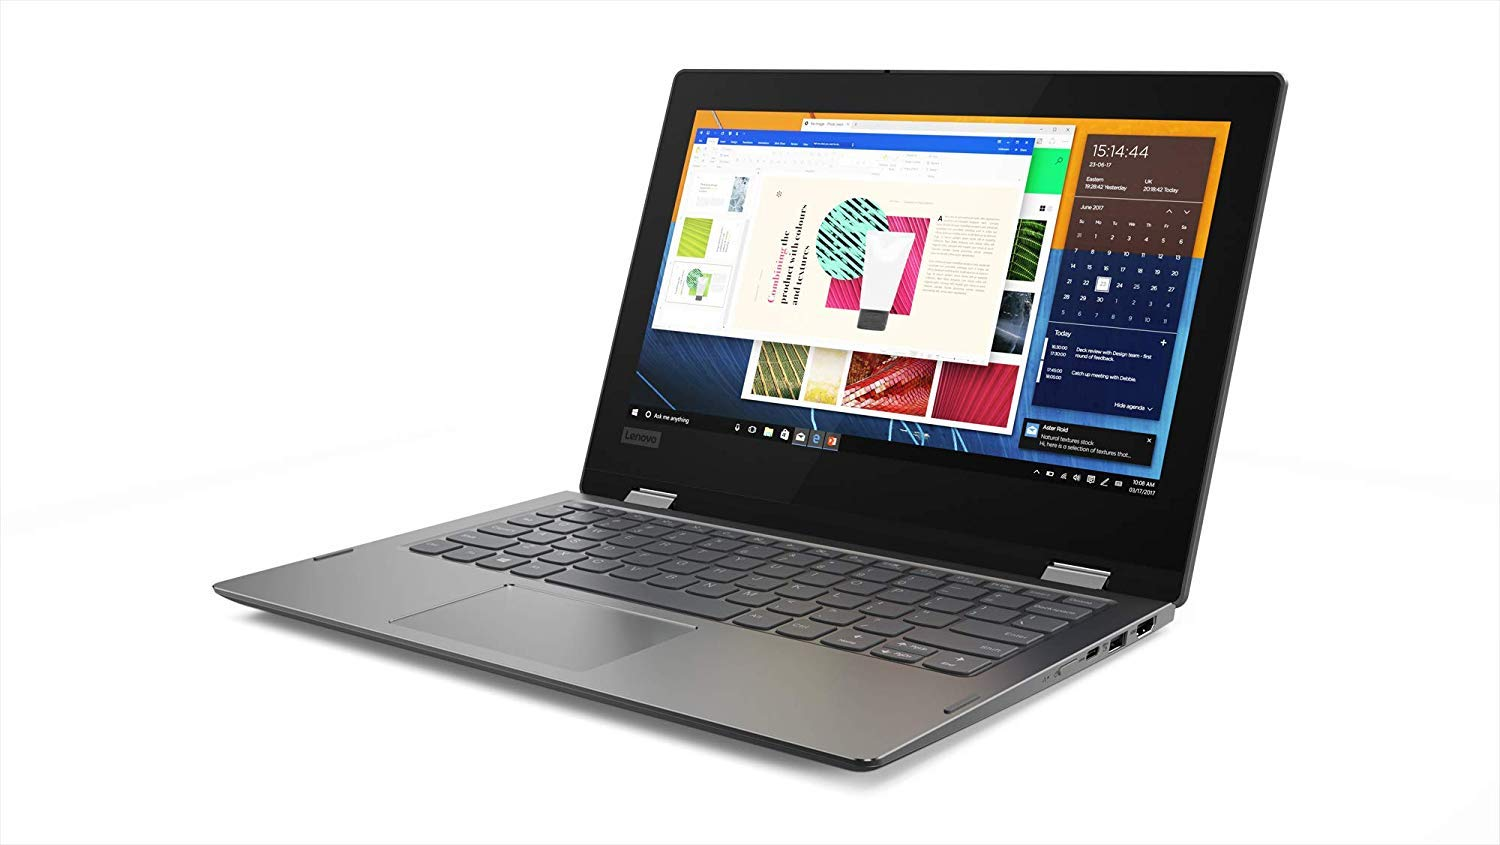 Lenovo Flex 11 Laptop, 11.6 Inch HD (1366 X 768) Display, Intel Pentium Silver N5000 Processor, 4GB DDR4 RAM, 64GB eMMC SSD, Intel UHD Graphics 605, Windows 10, 81A7000BUS, Onyx Black by Lenovo